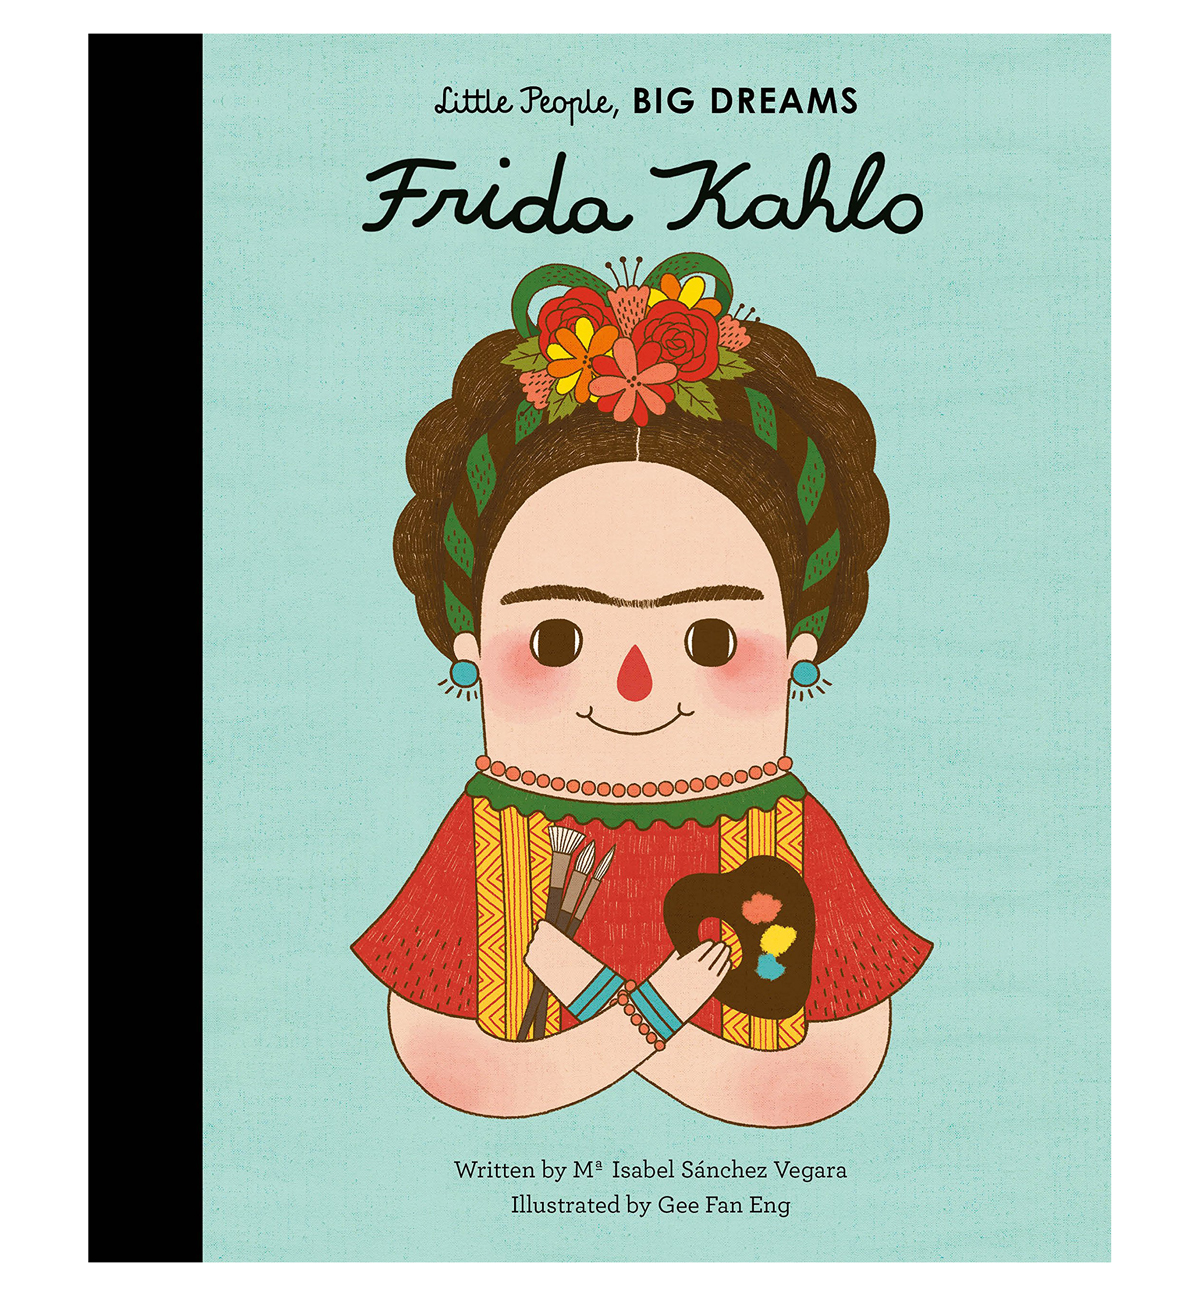 frida kahlo little people big dreams